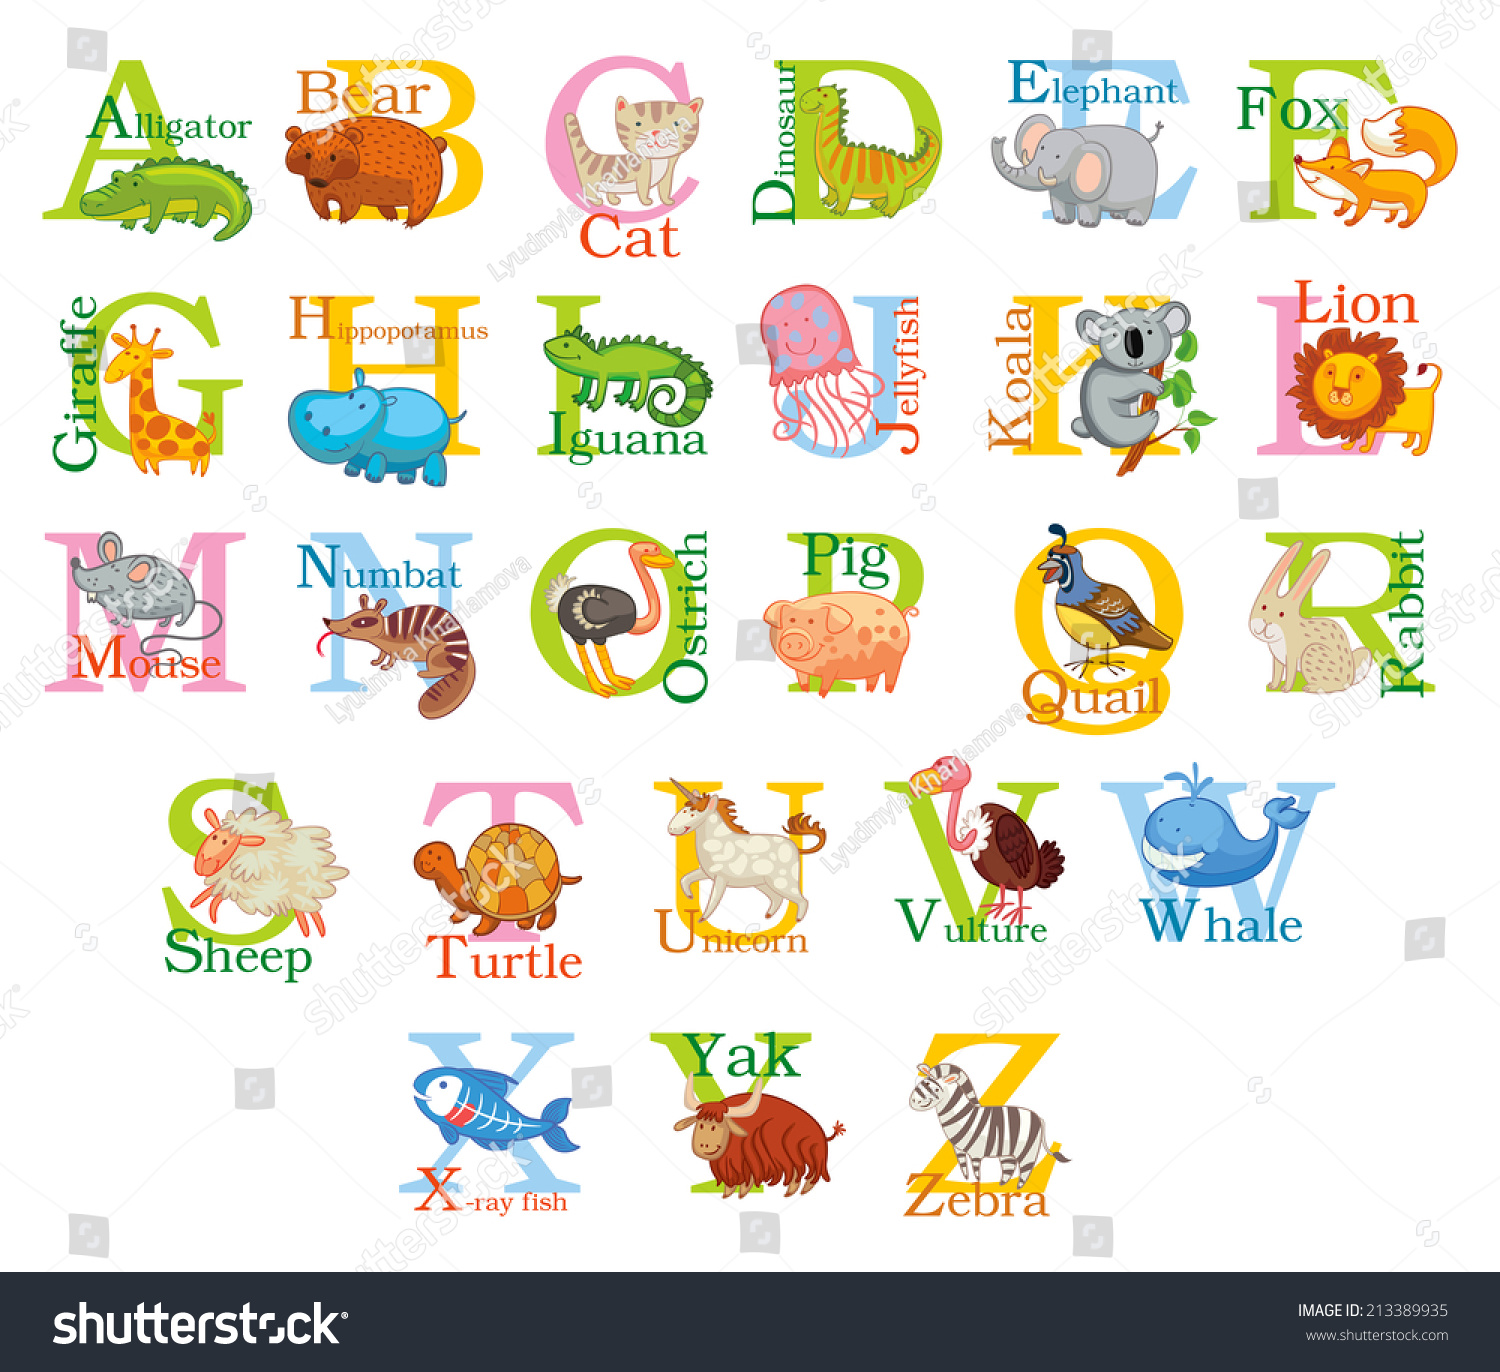 Cartoon Characters Starting With A : Cute animal alphabet funny cartoon character stock vector